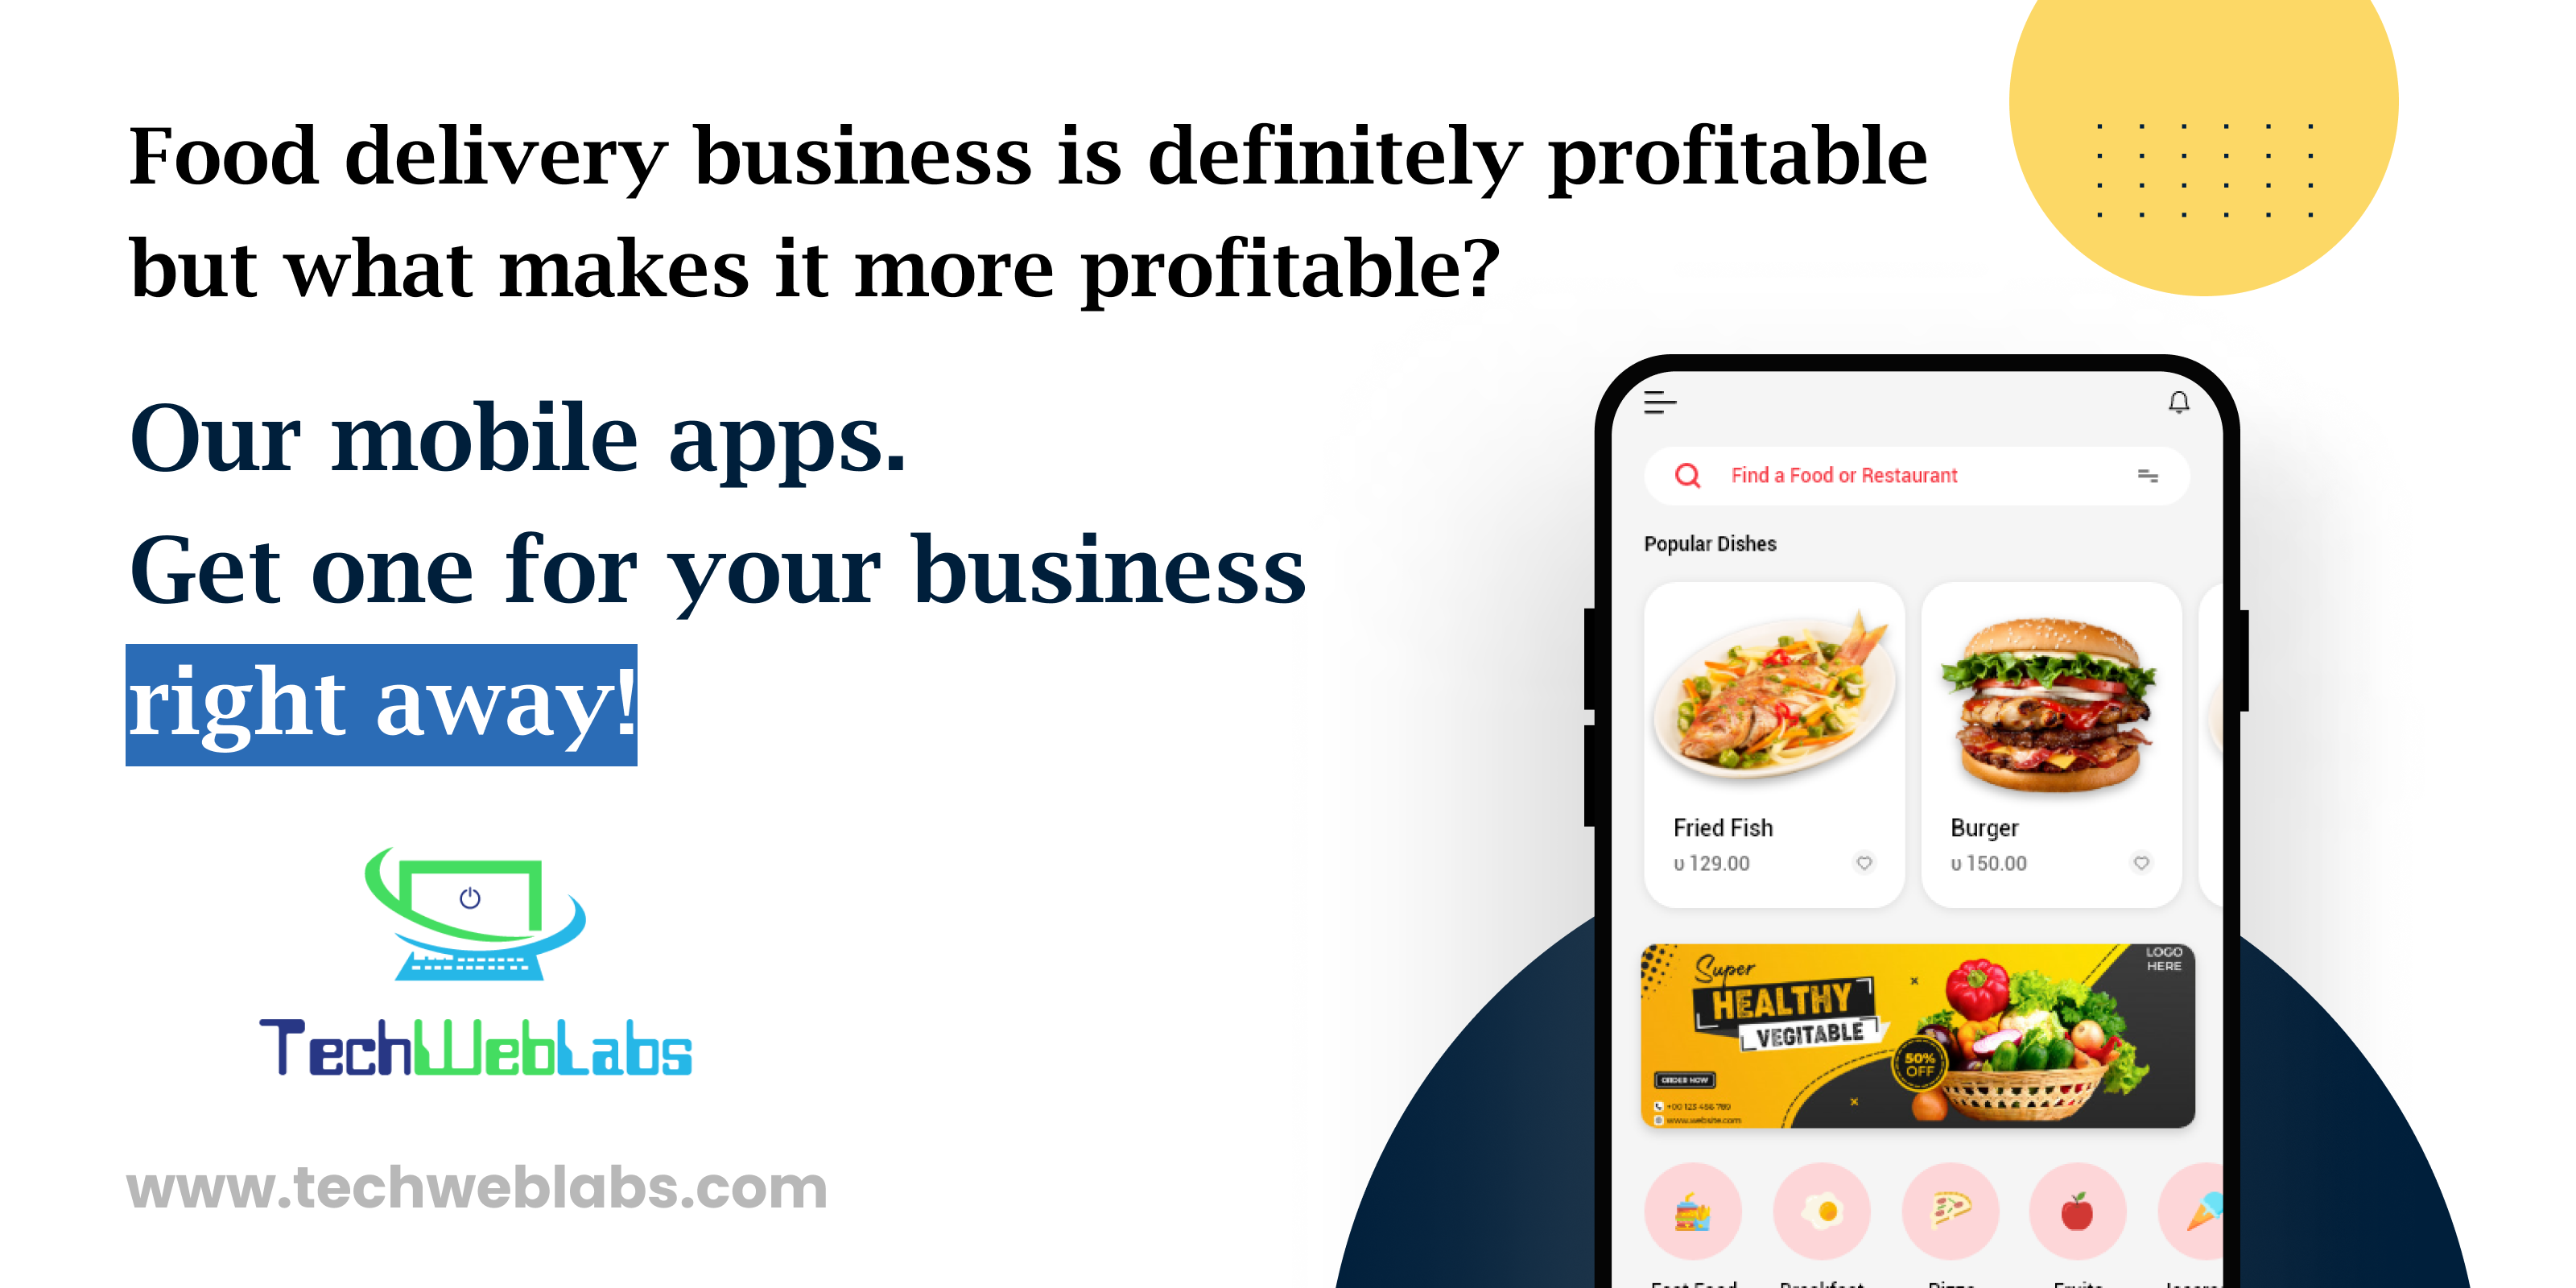 , Are food delivery services Profitable? It's Pros and Cons., Techweblabs - Web Development | Mobile App Development | Hyderabad